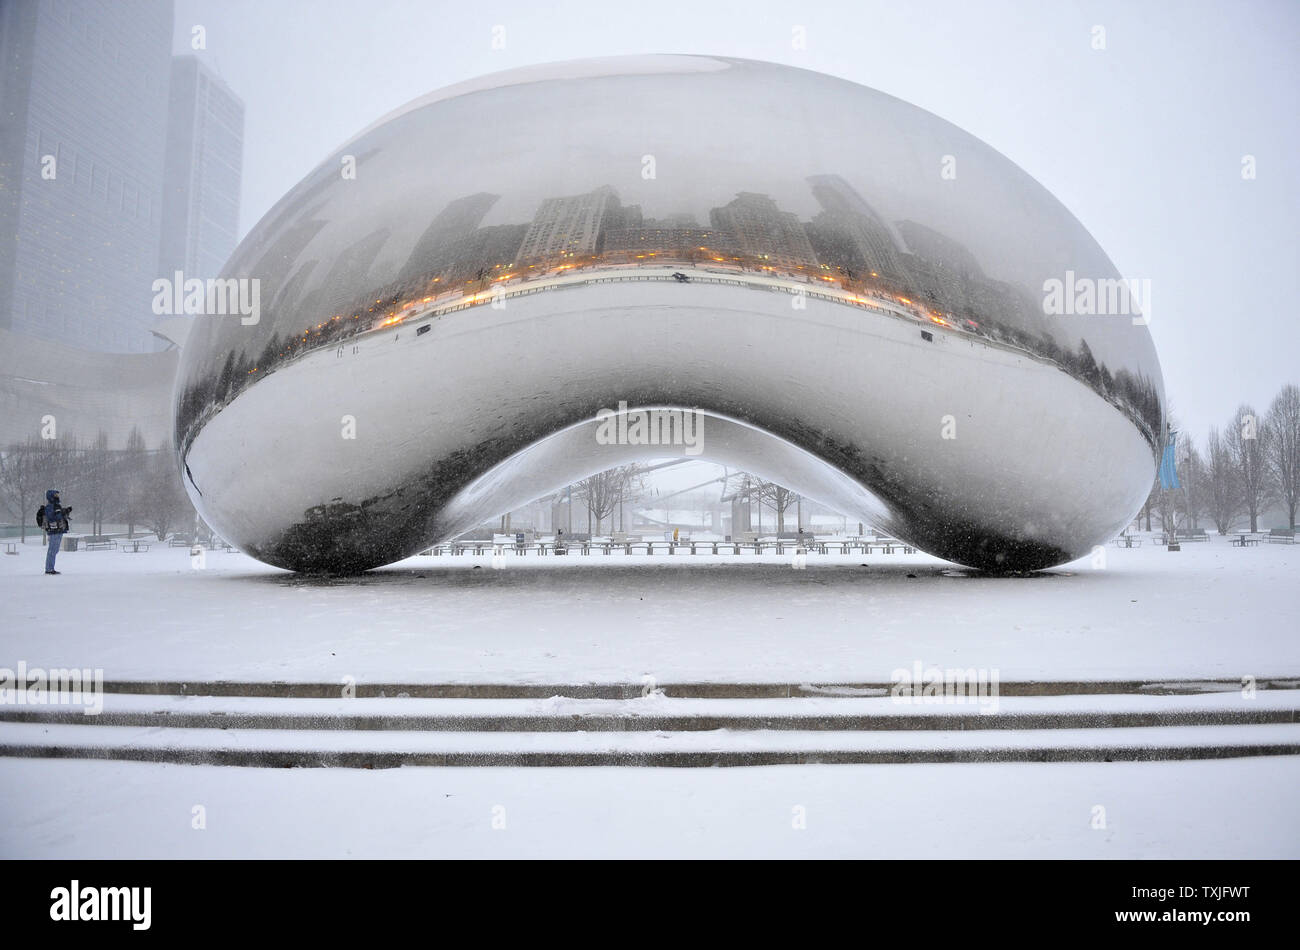 A person looks at the Cloud Gate sculpture in Millennium Park as a major snow storm hits on February 1, 2011 in Chicago. Up to two feet of snow is expected to fall in the Chicago area as a winter storm created blizzard conditions from the southern Great Plains to the upper midwest on Tuesday.     UPI/Brian Kersey - Stock Image